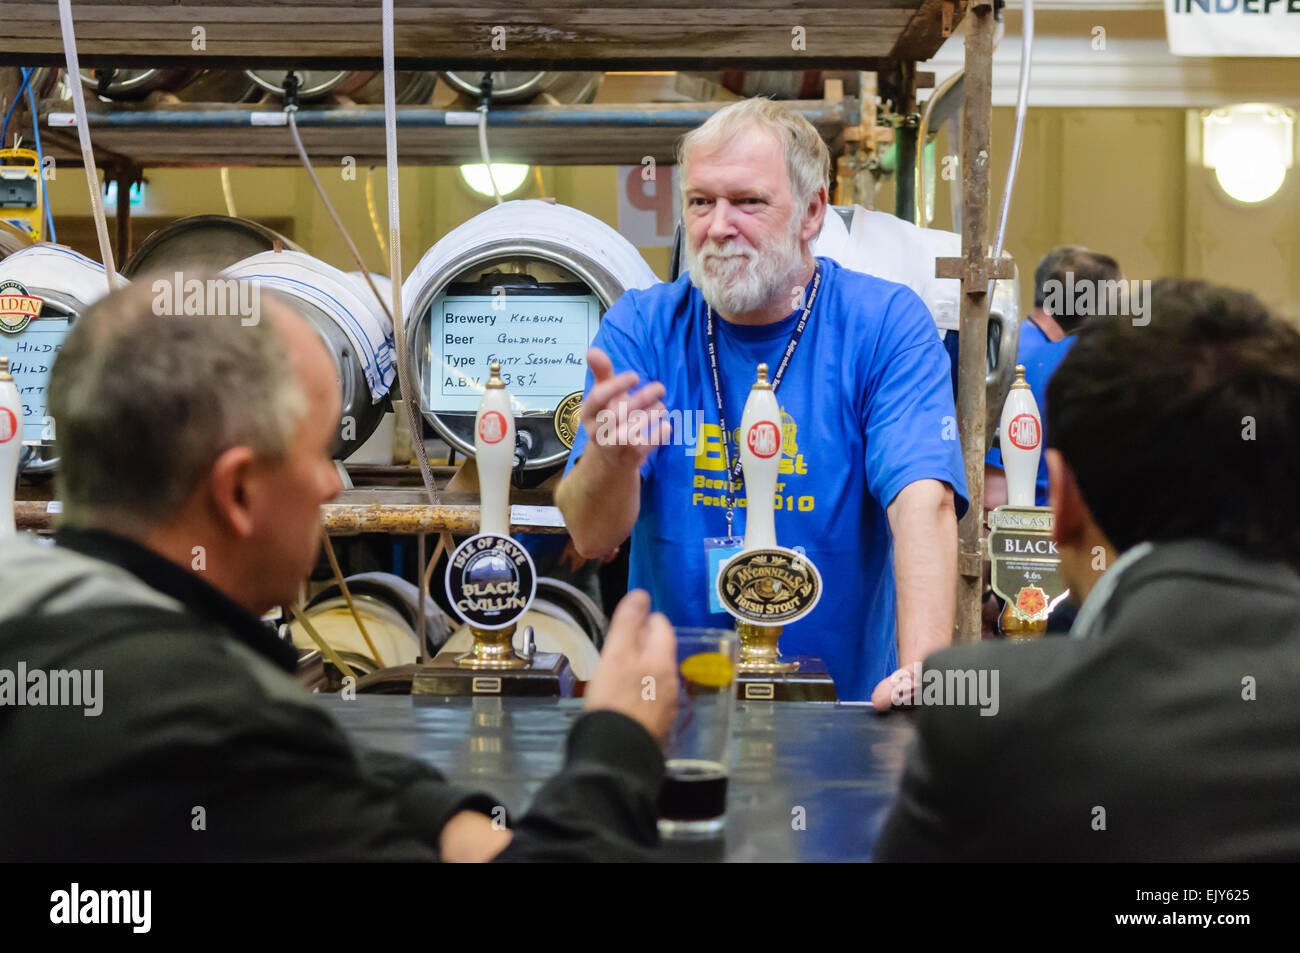 A barman serves customers at a CAMRA real ale festival. Stock Photo